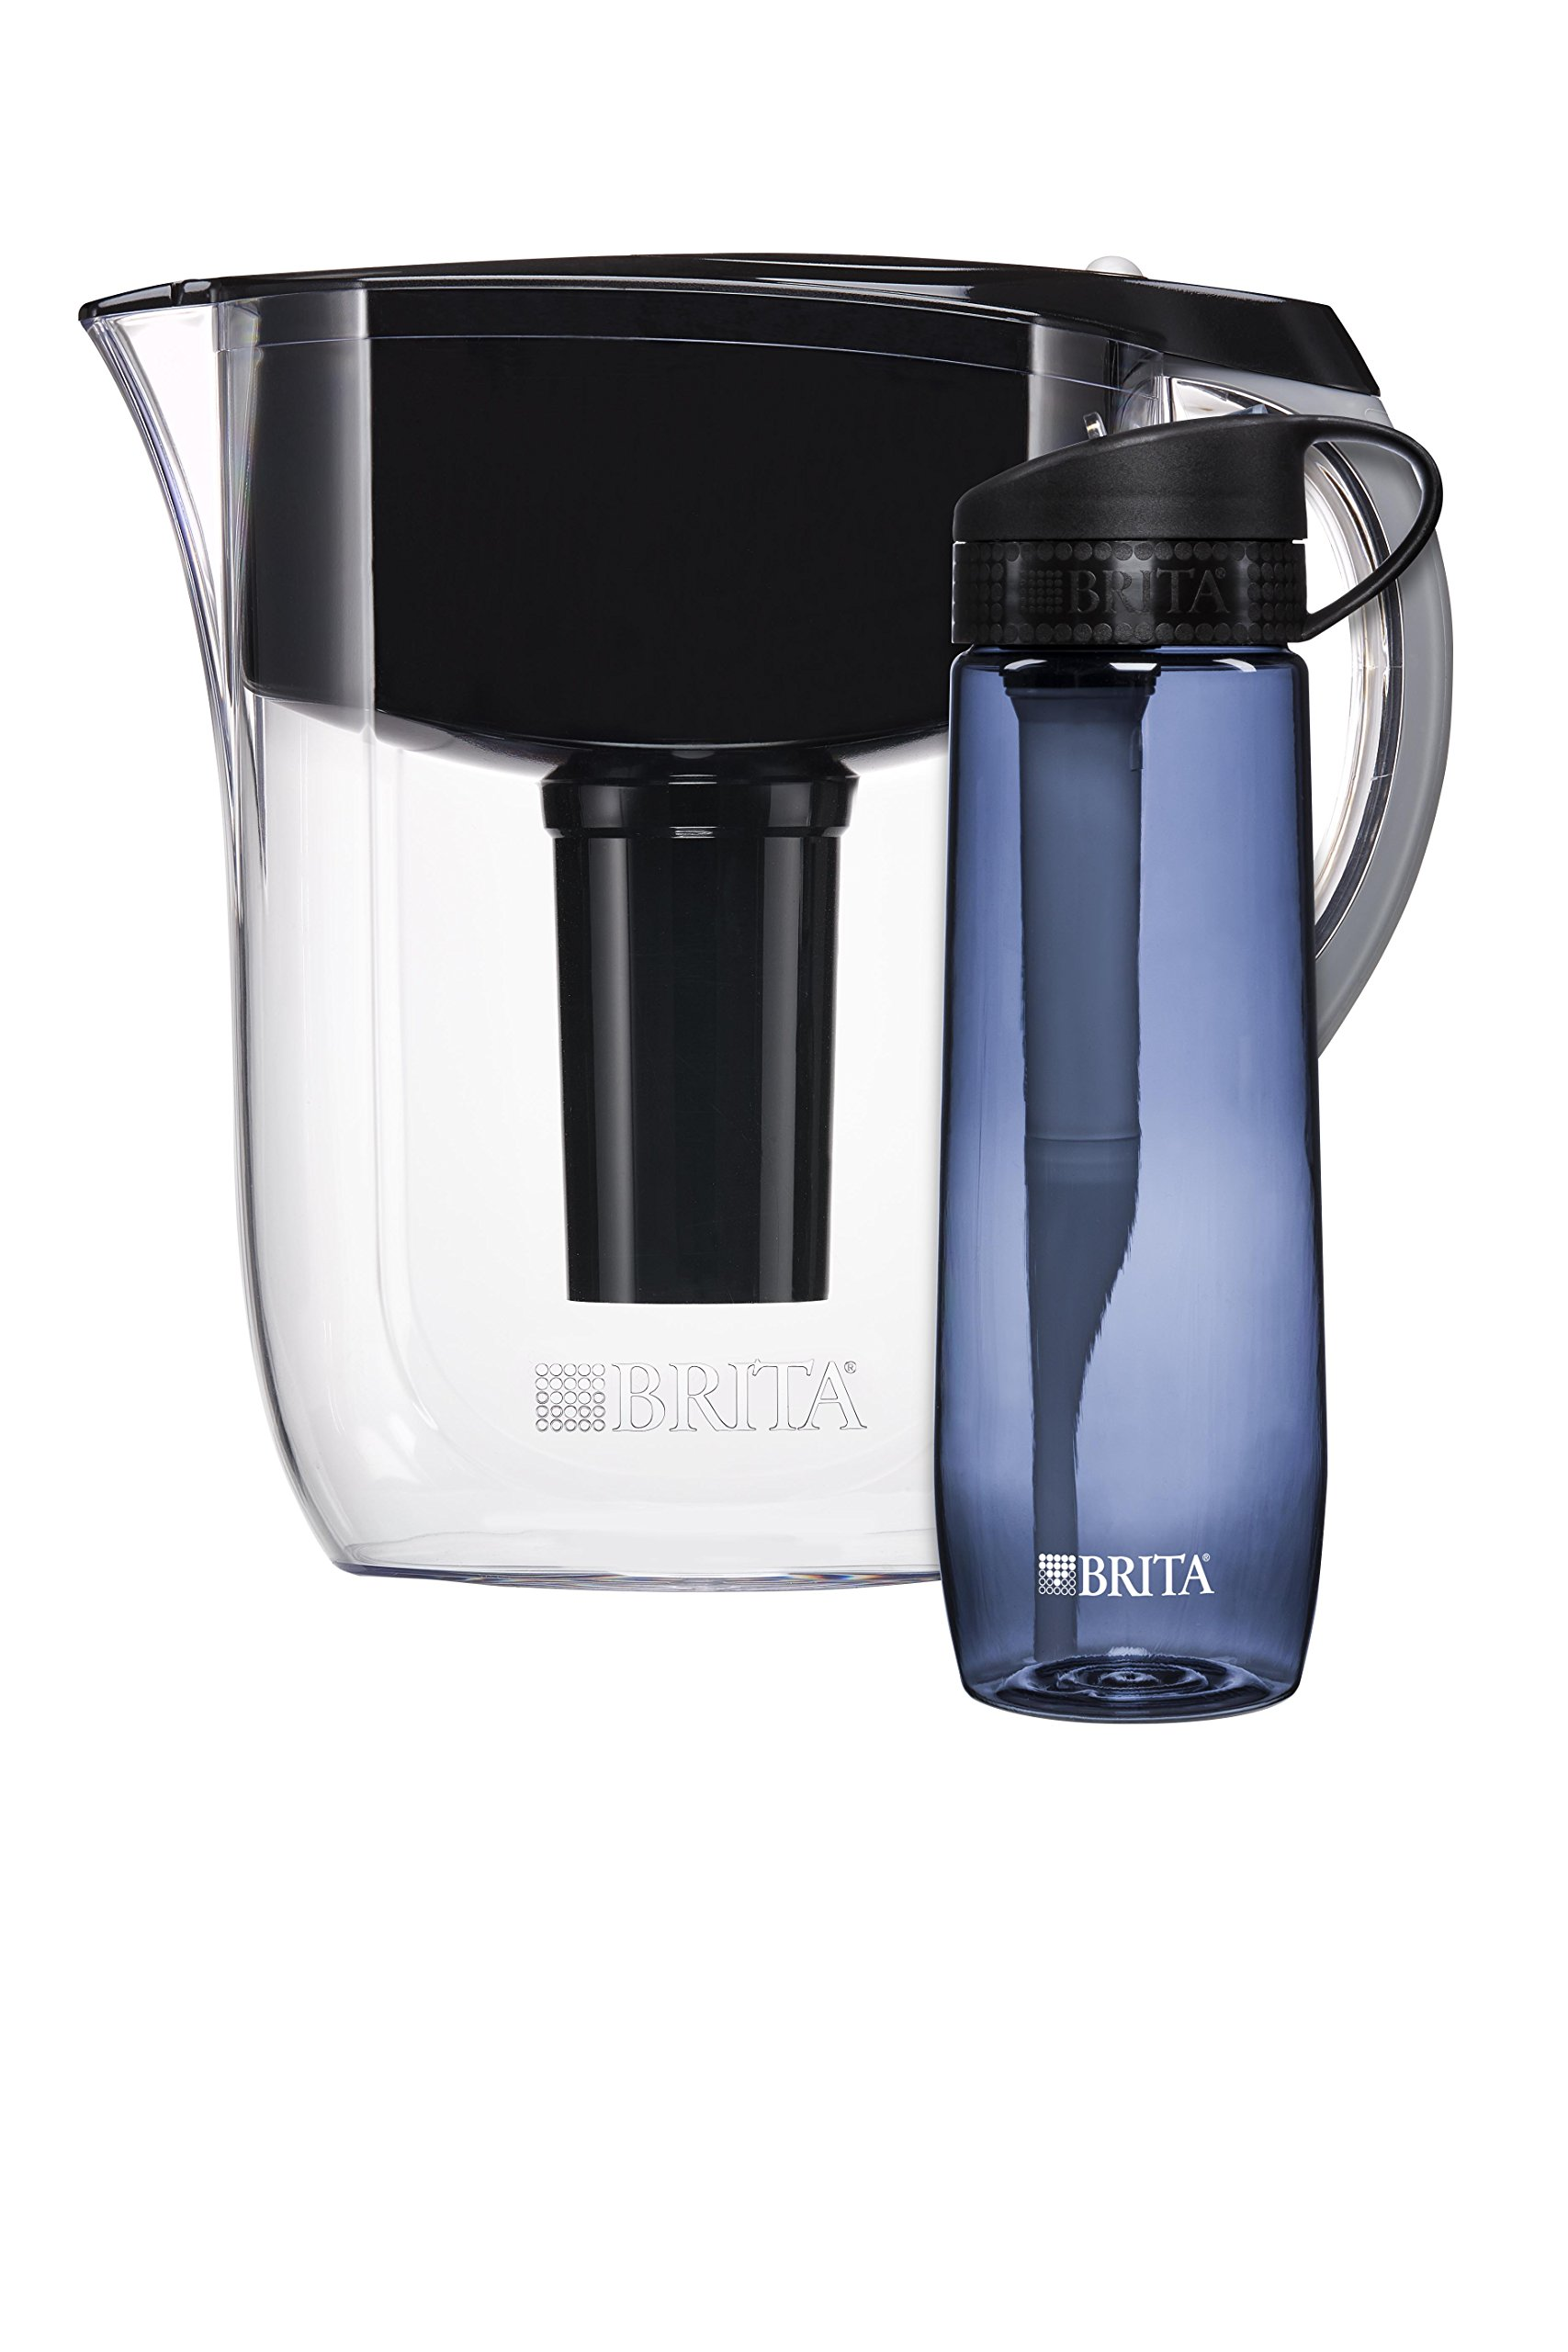 Brita 10 Cup Jet Black Grand Water Filter Pitcher with Grey Hard Sided Water Filter Bottle